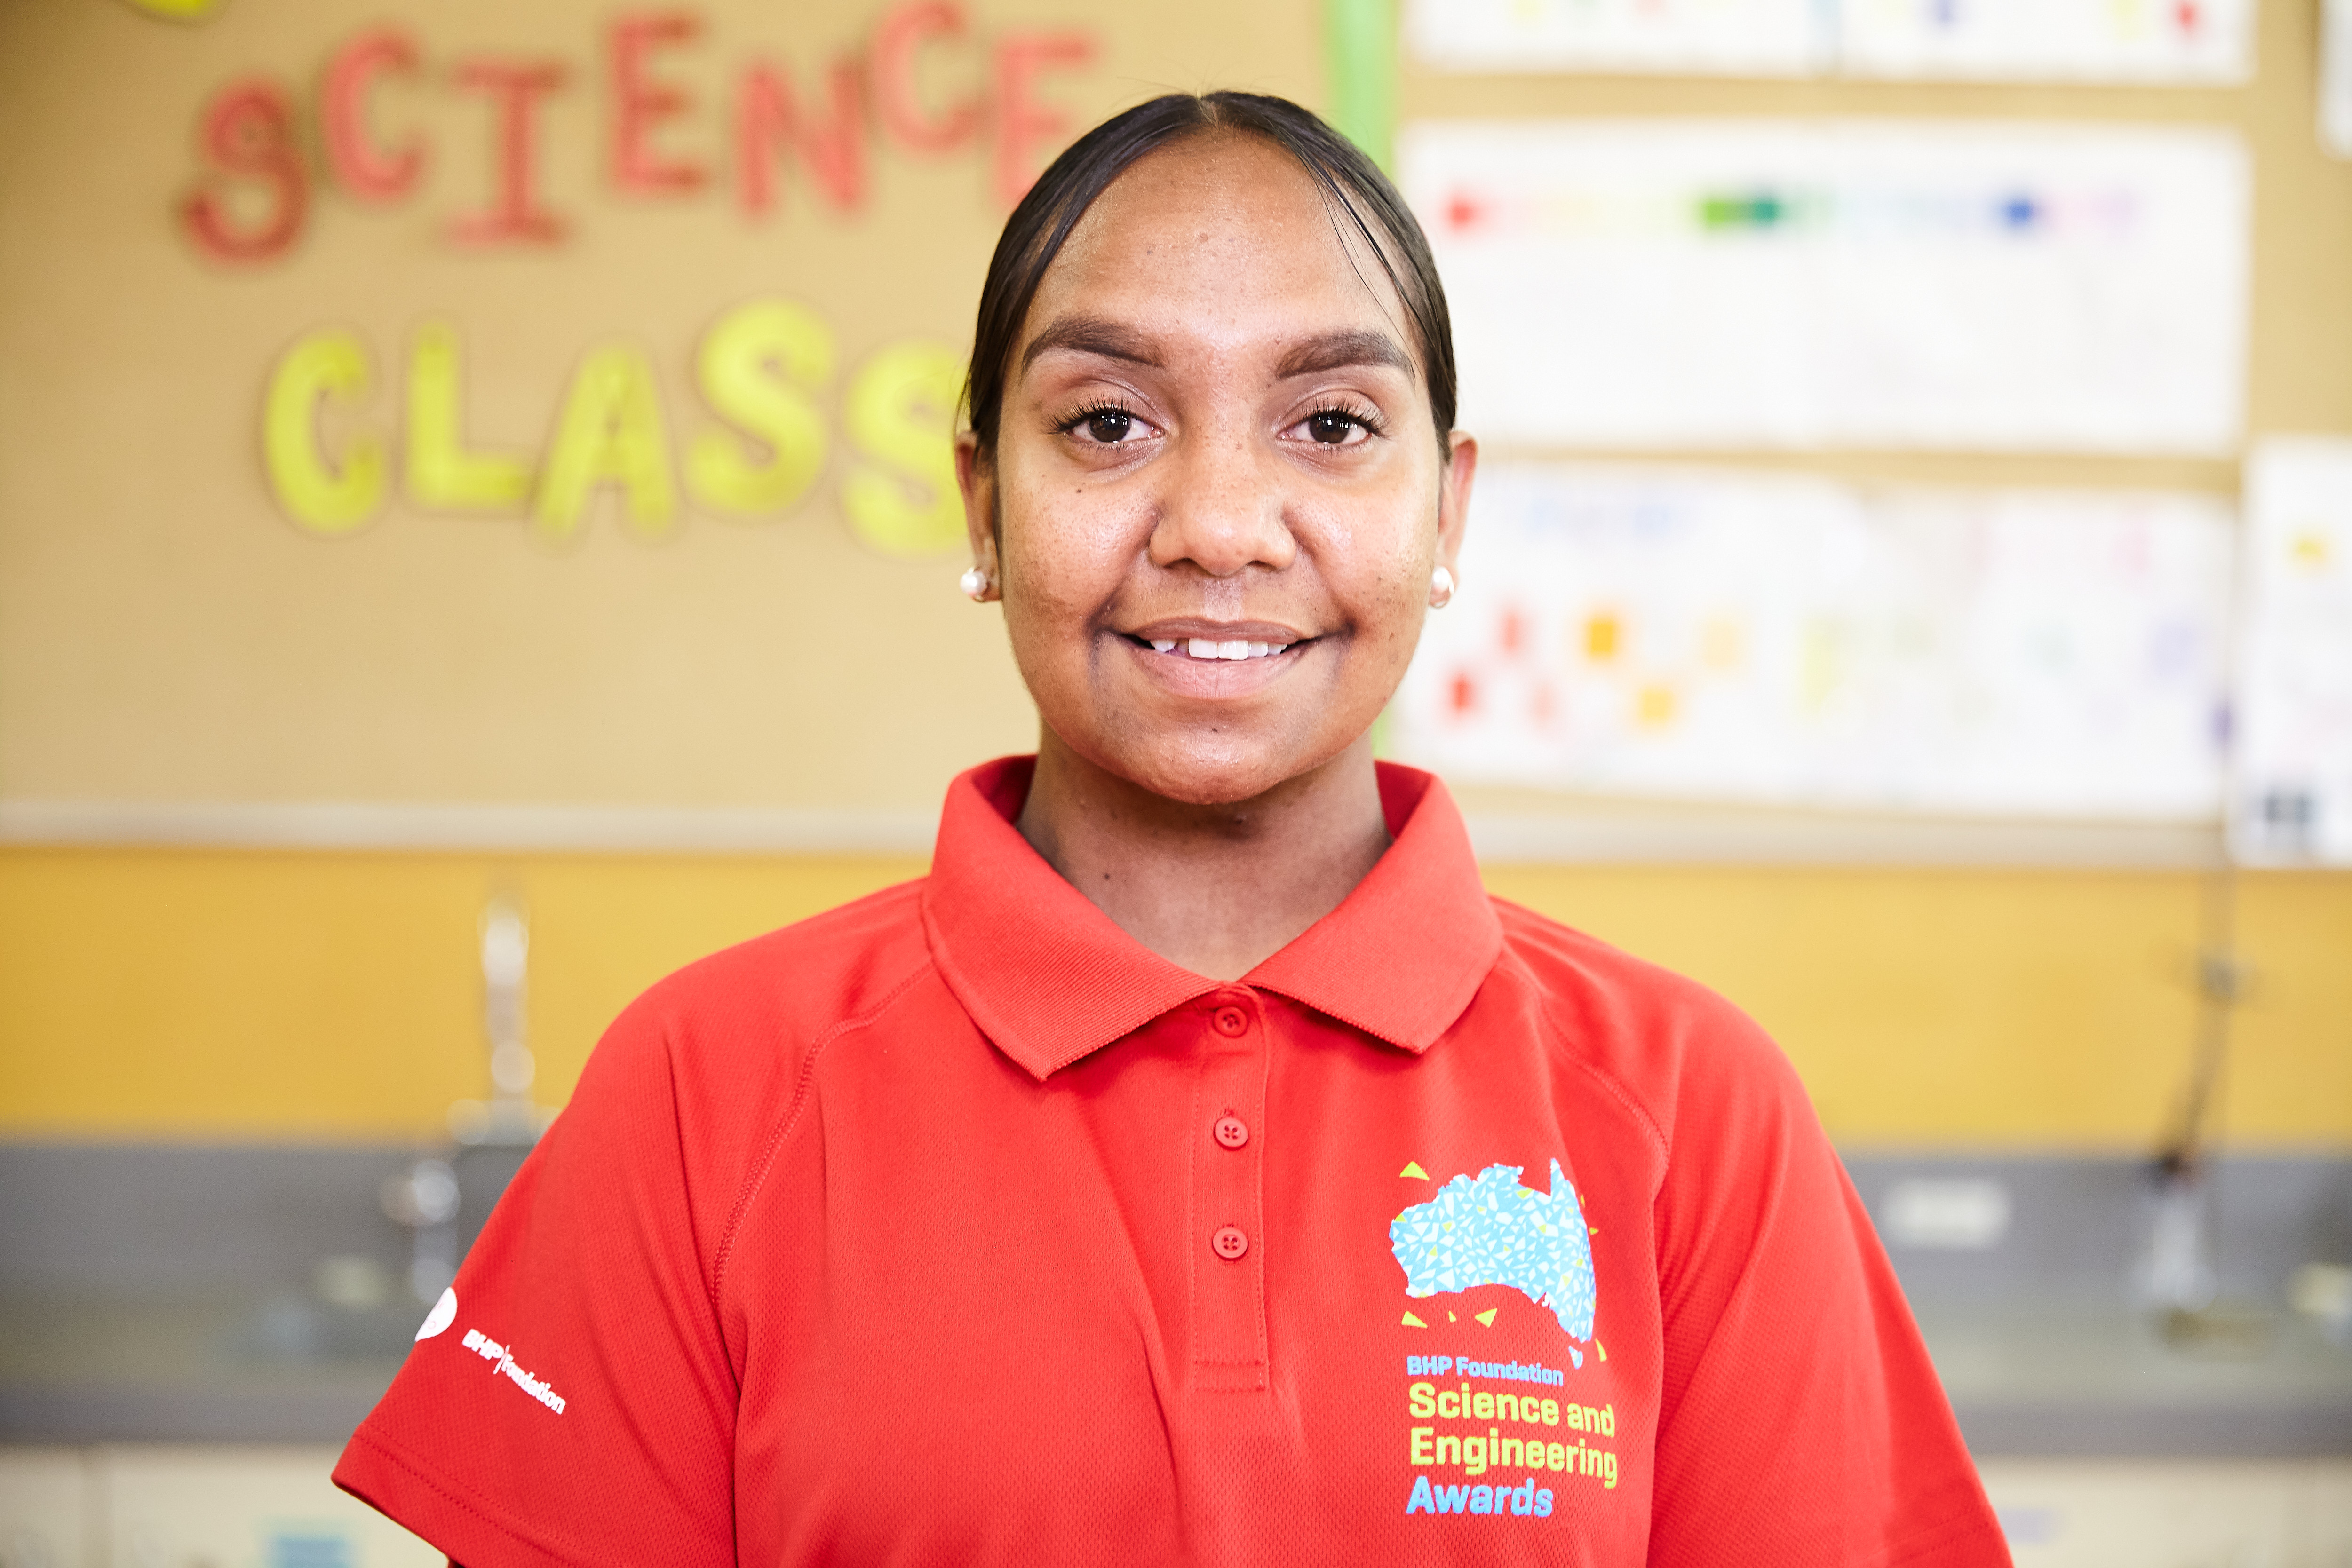 Nyheemah Cox wearing a red shirt with the BHP Foundation Science and Engineering Awards logo,and standing in a classroom.